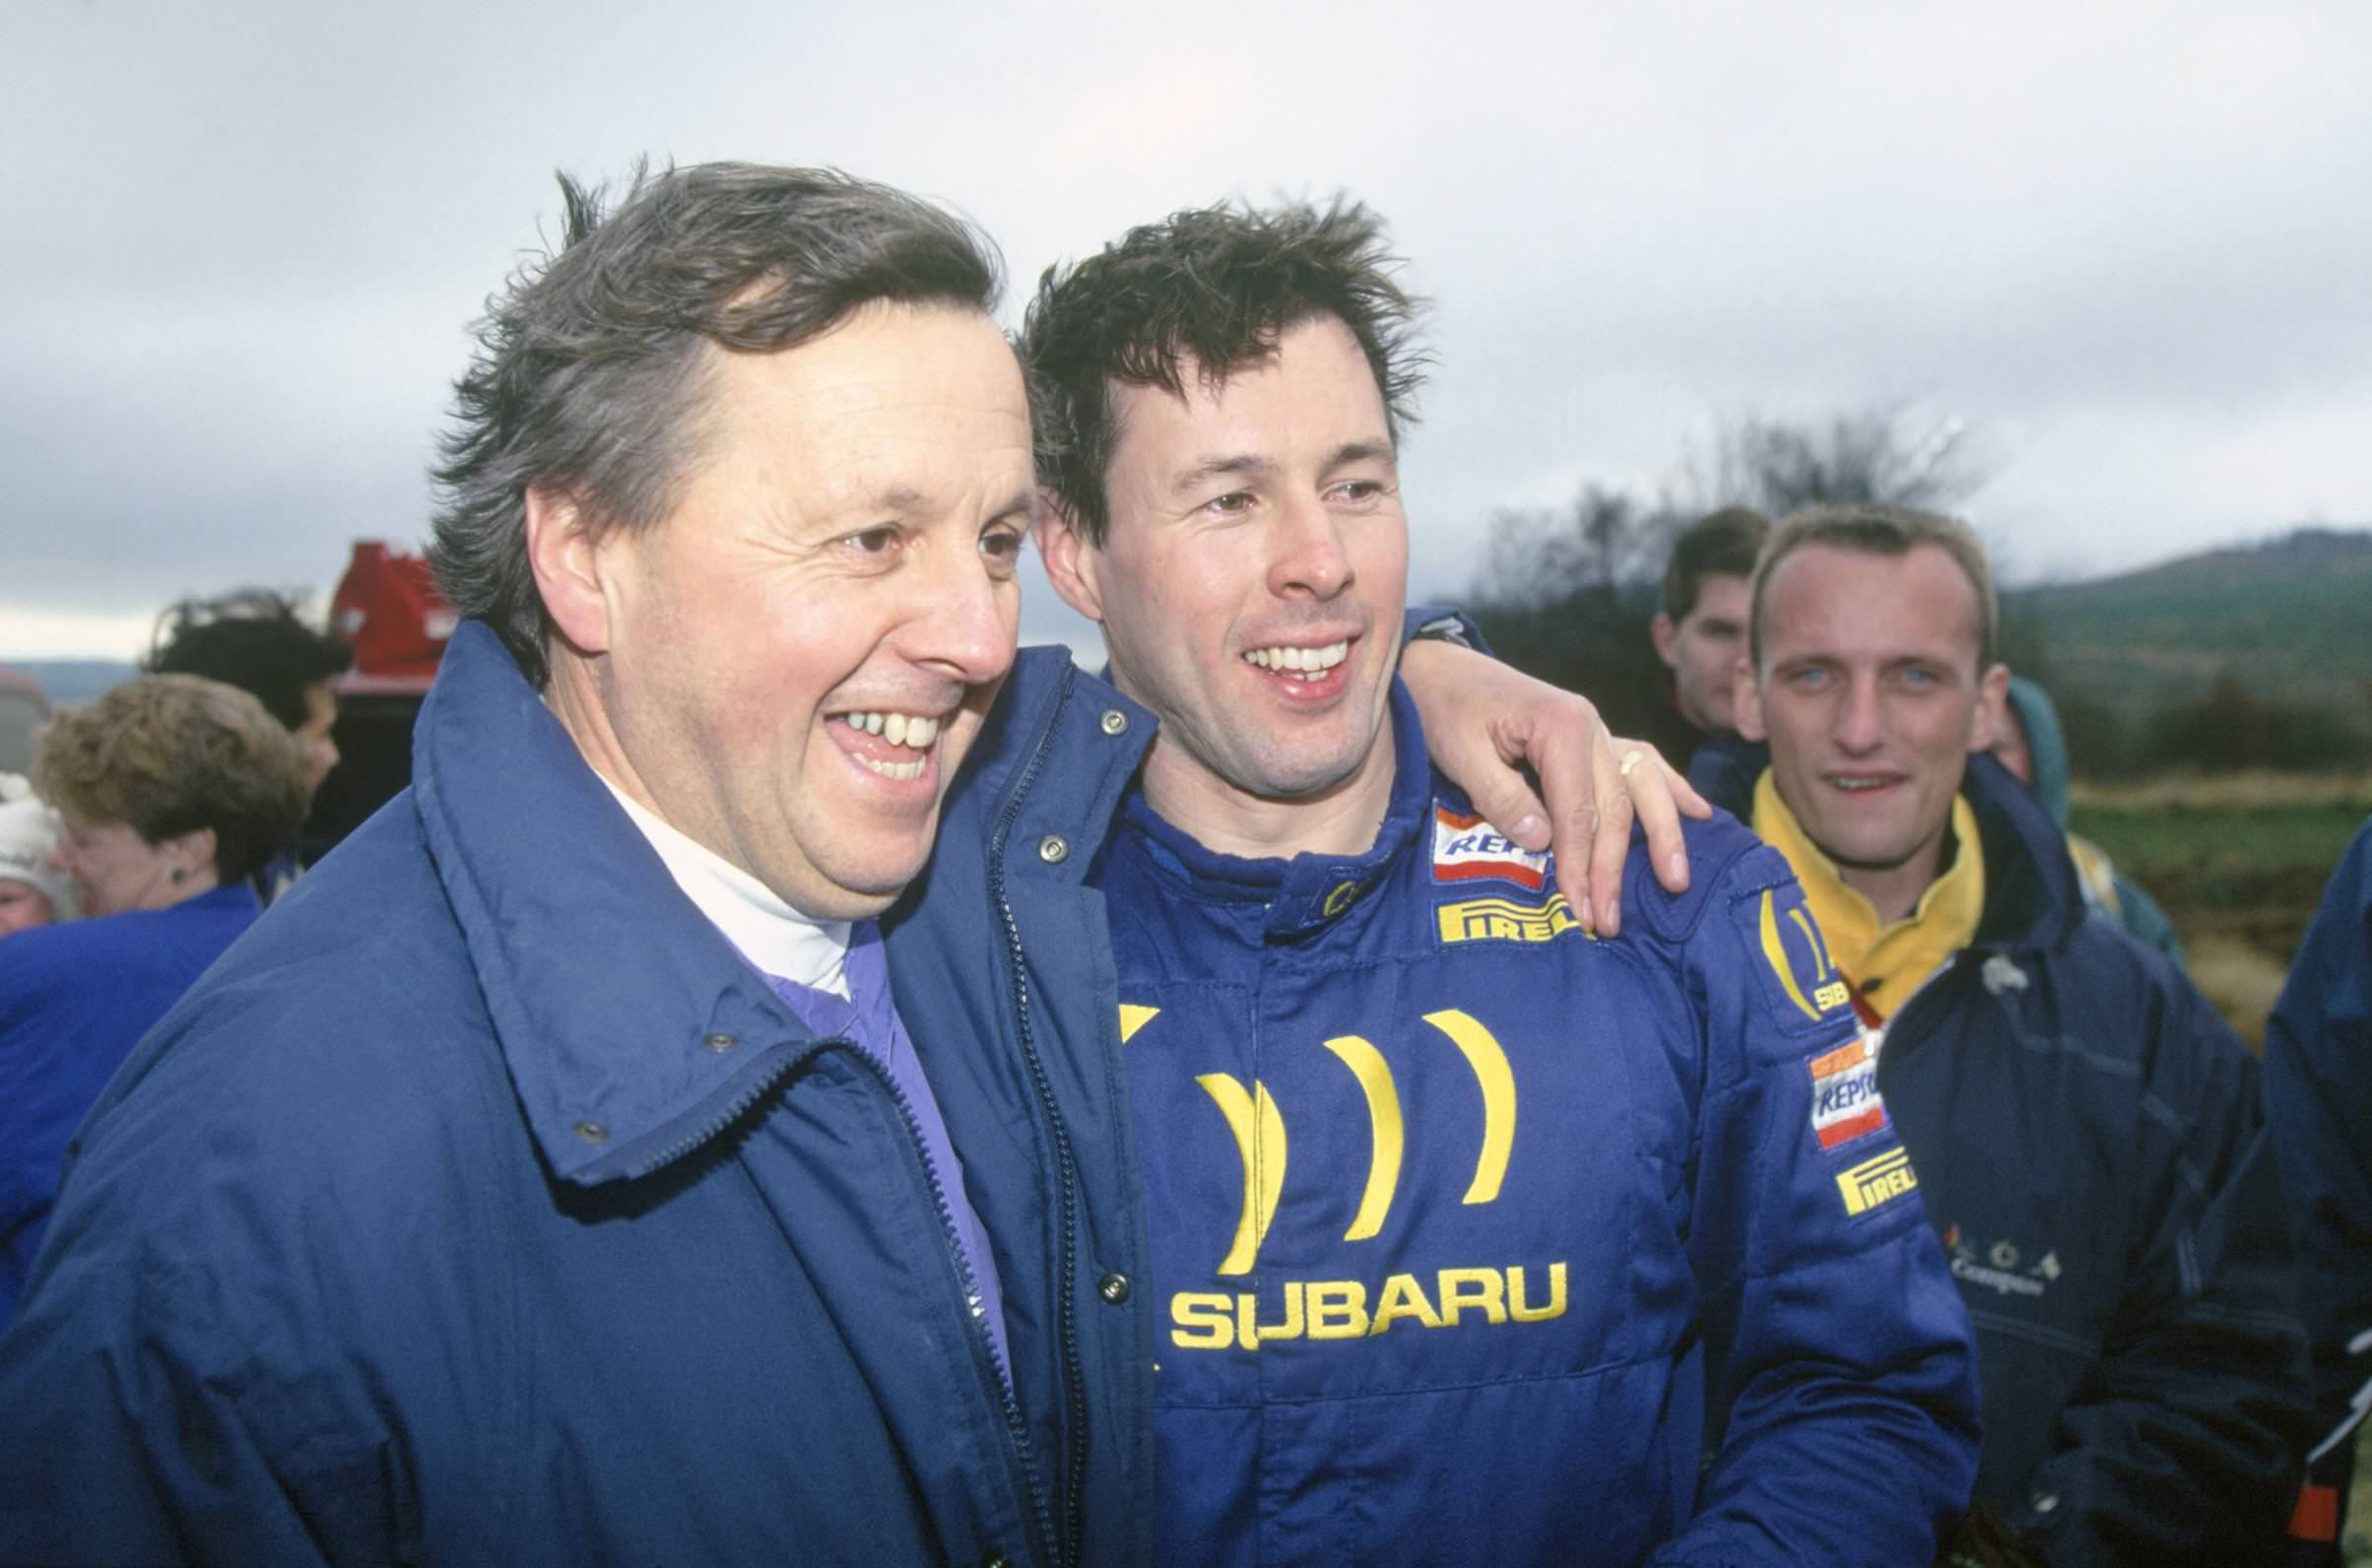 image of jimmy mcrae with rally champion driver son colin mcrae